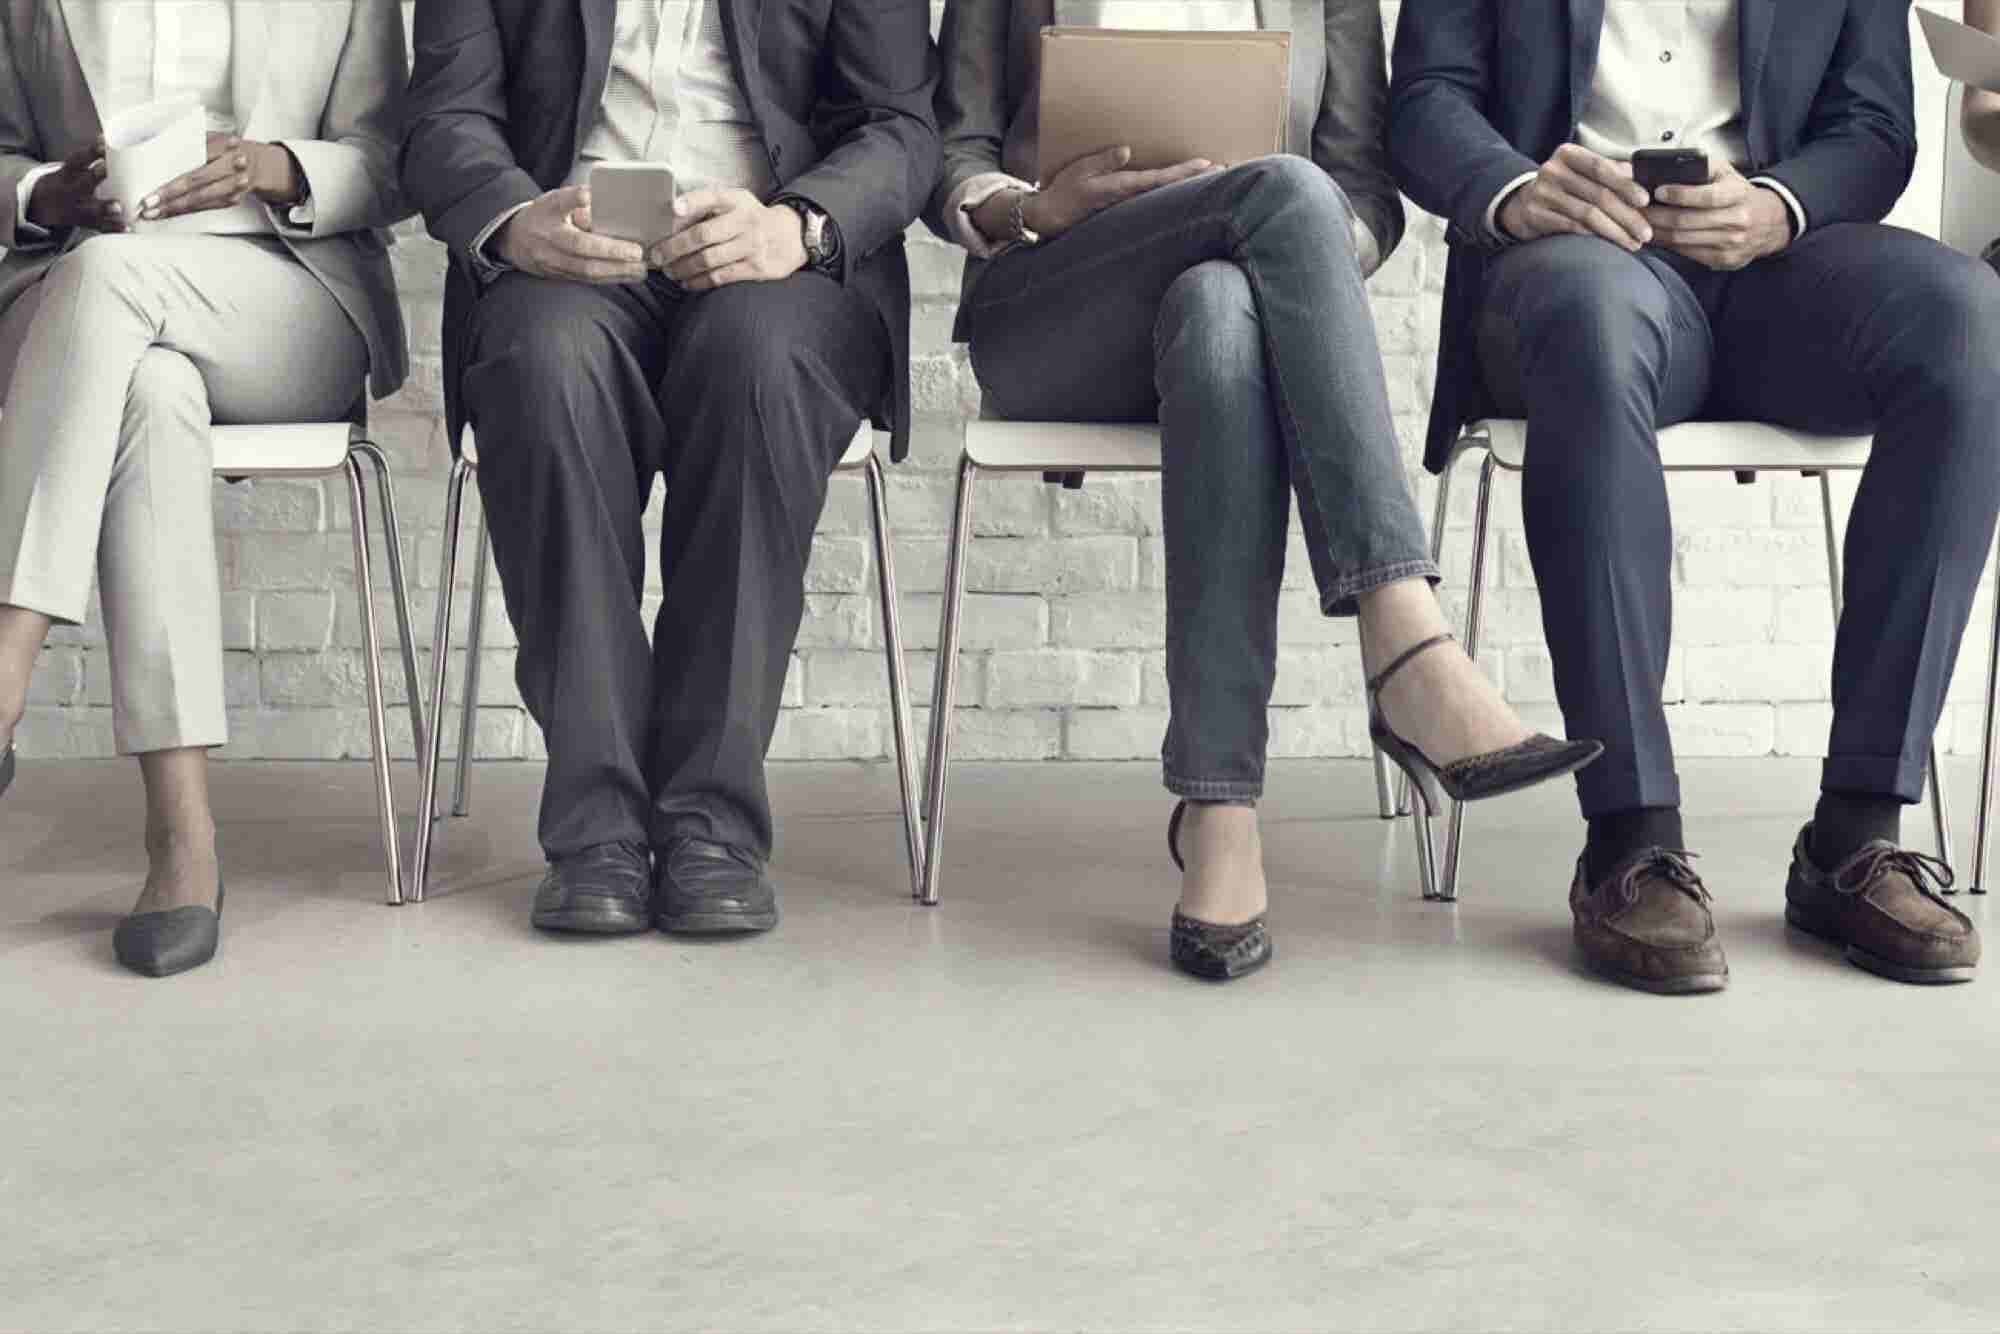 Hiring Diverse Professionals Strengthens the Workplace